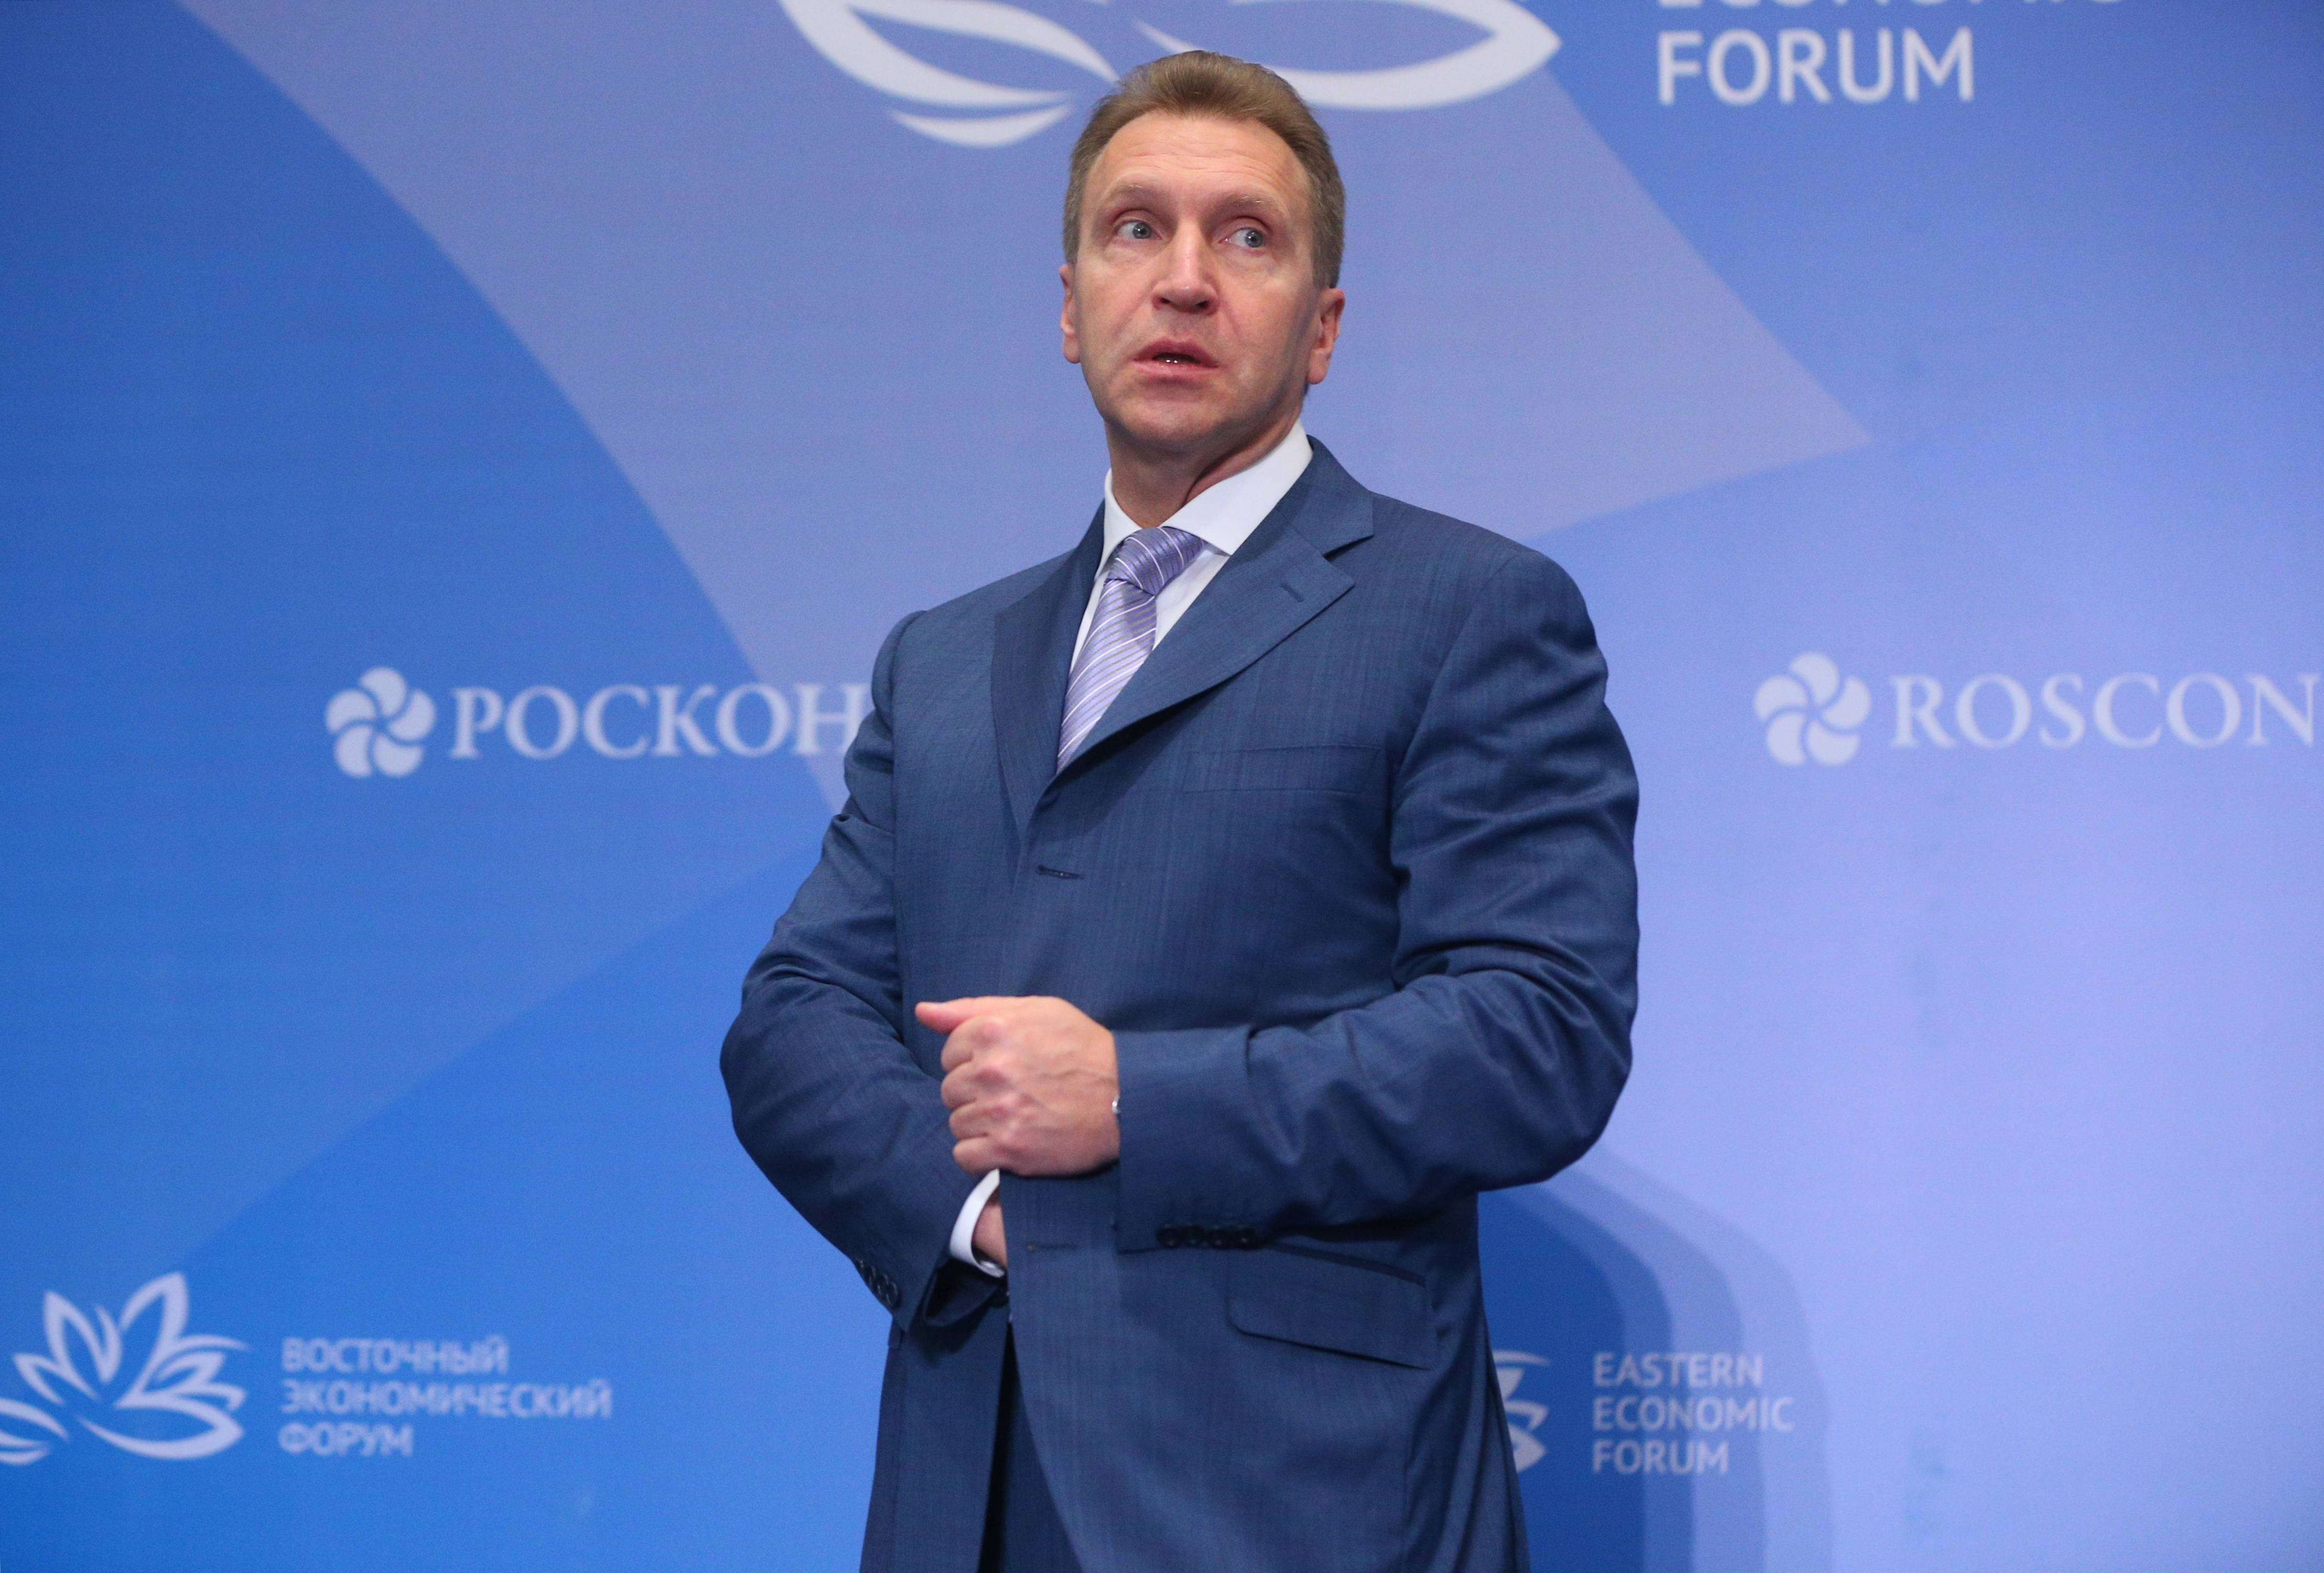 Russian Vice Premier Igor Shuvalov says the Russia-China economic cooperation dynamic is good.